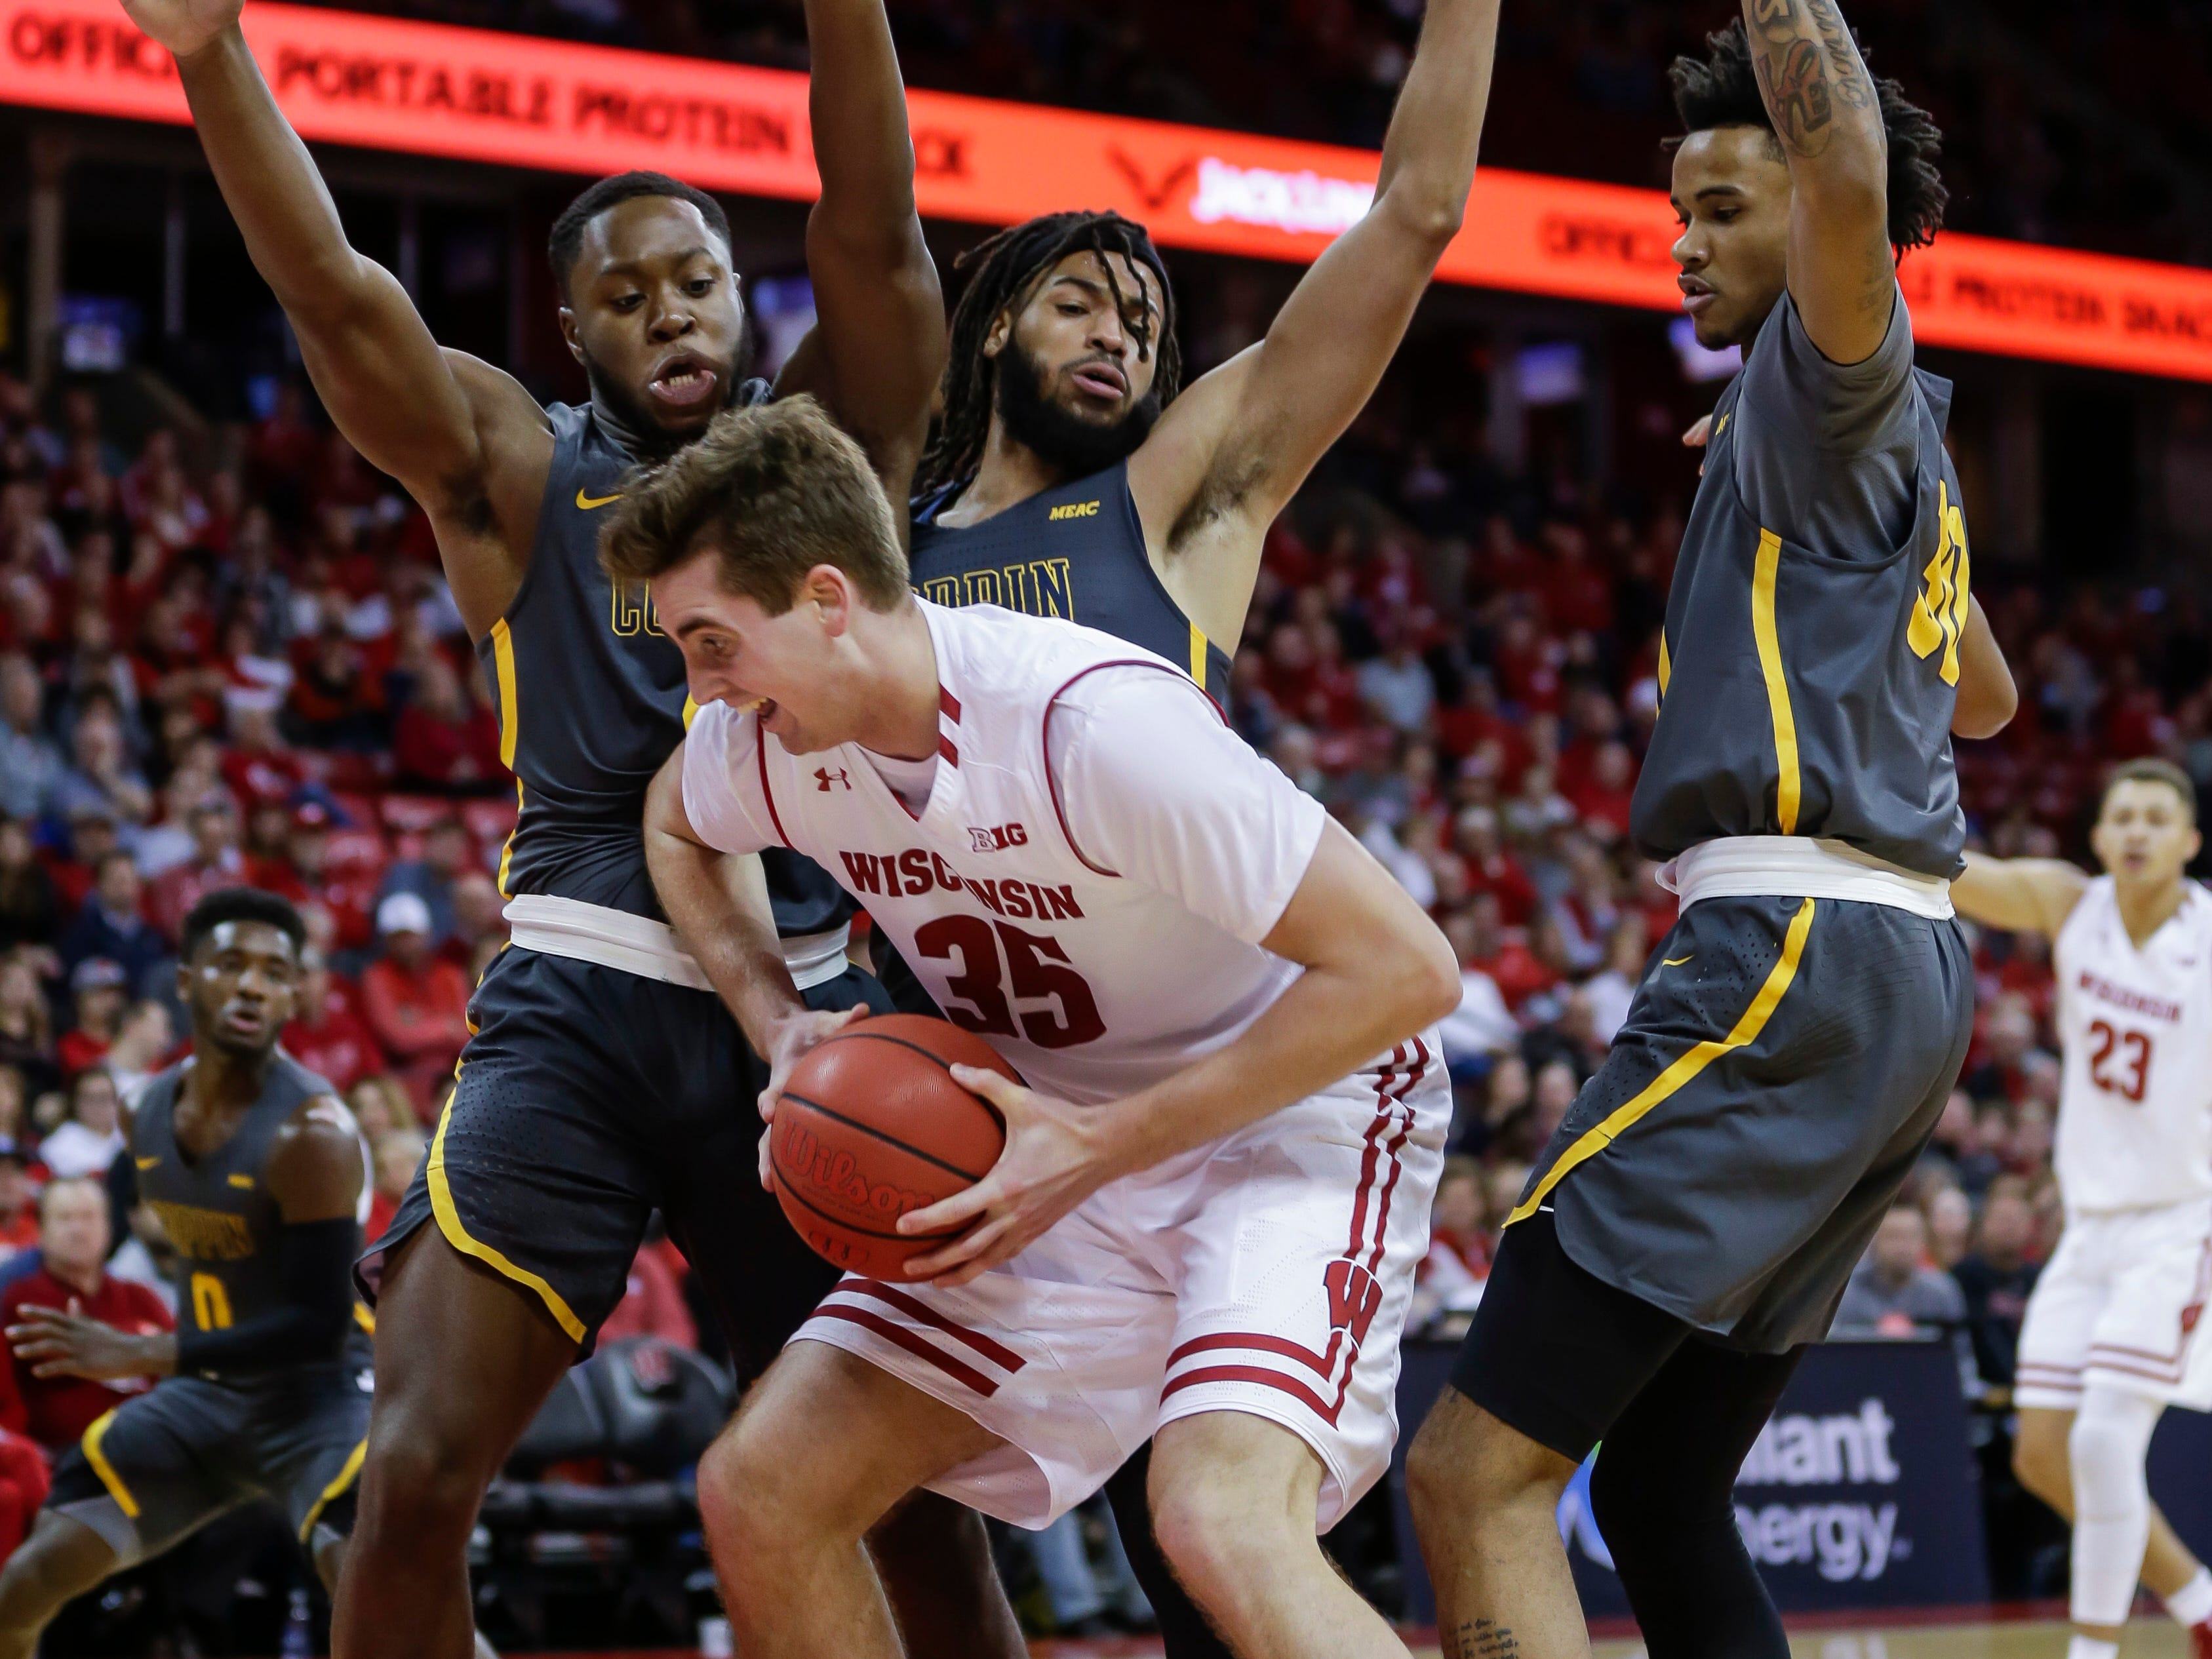 Wisconsin's Nate Reuvers works against Coppin State's Nigel Marshall, left, Chad Andrews-Fulton and Jordan Hardwick.